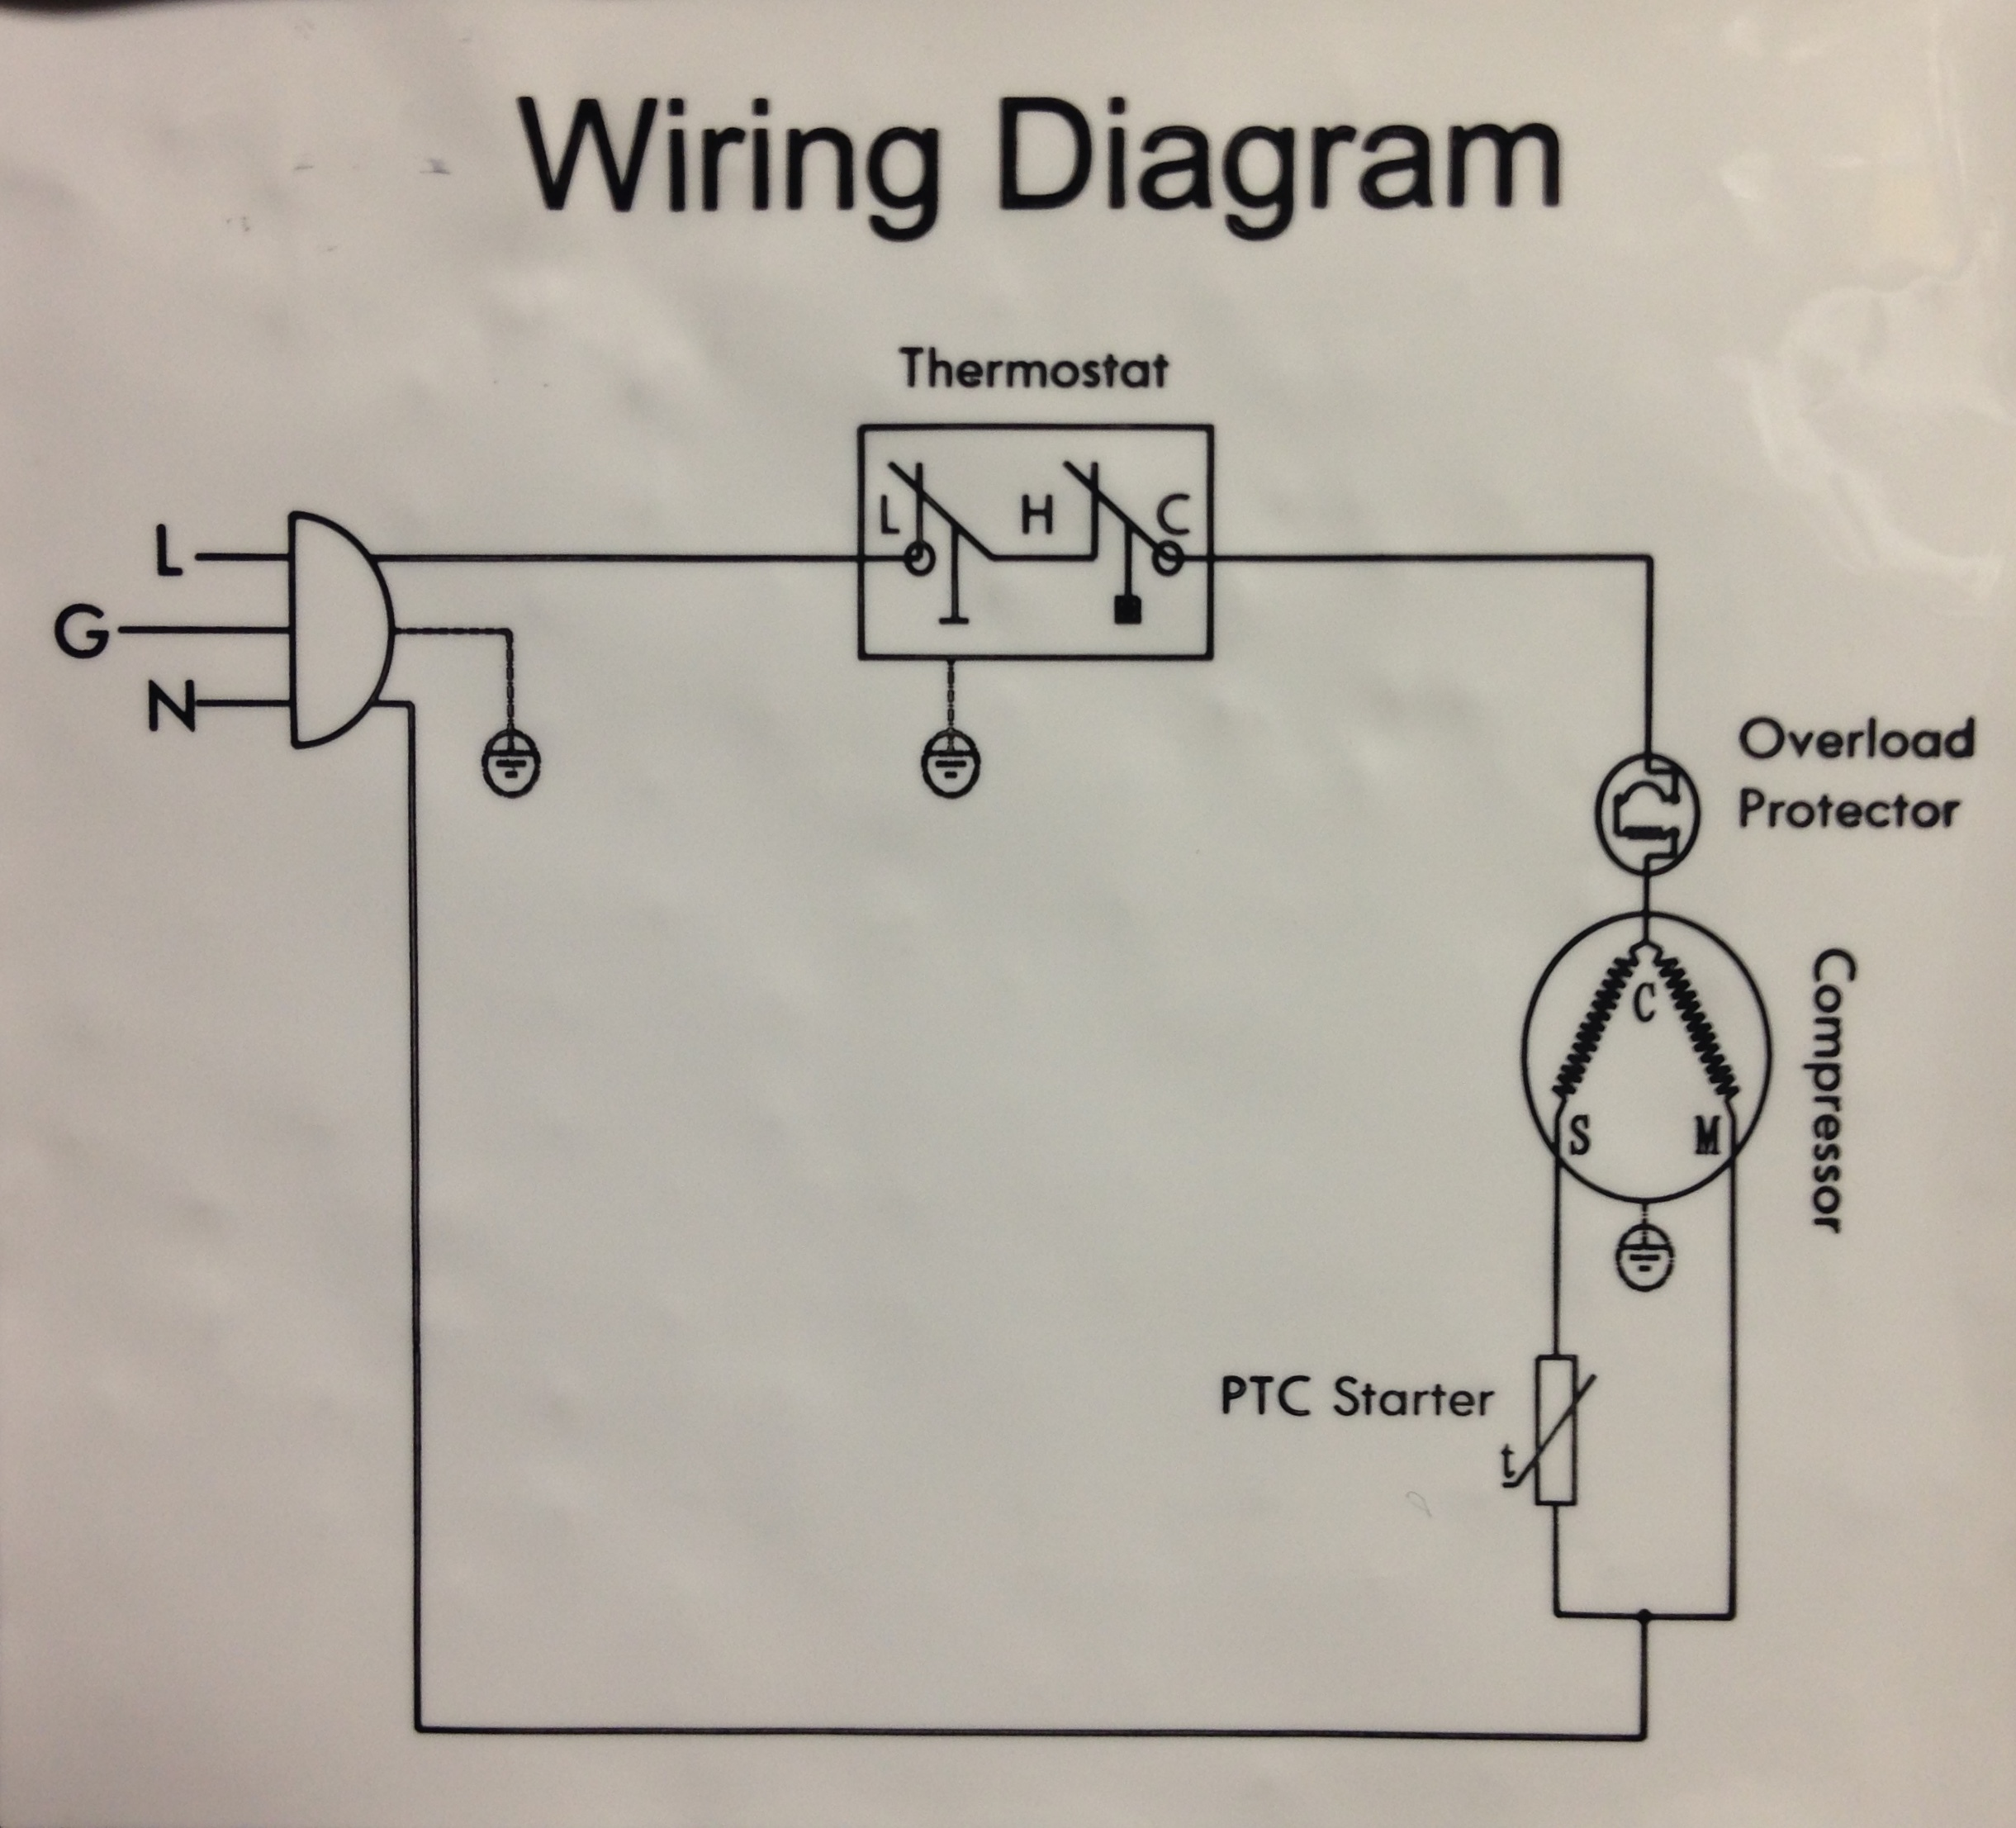 New Build Electronics Newb Diagram Help Fridge Brewpi Heating Cooling Thermostat Wiring Img 05022441x2213 946 Kb